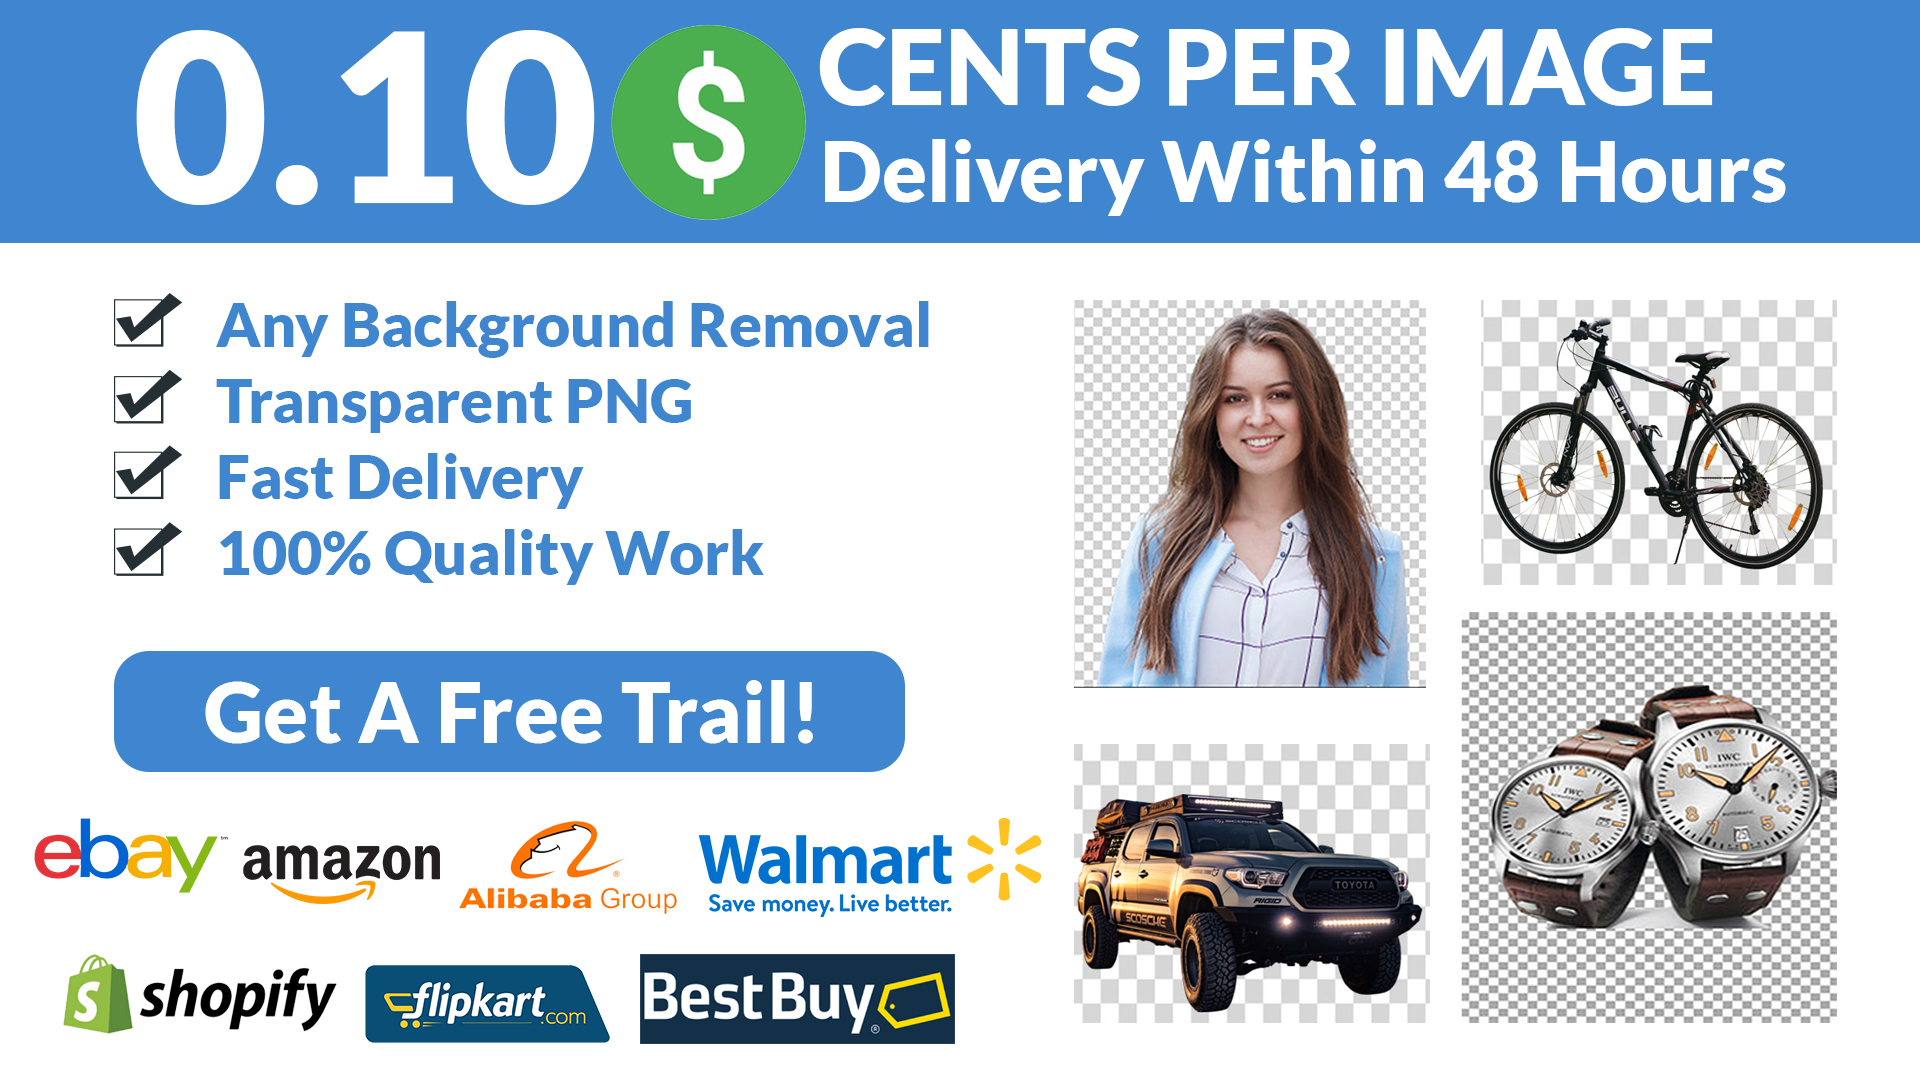 150 Image Background Remove in 48 Hours